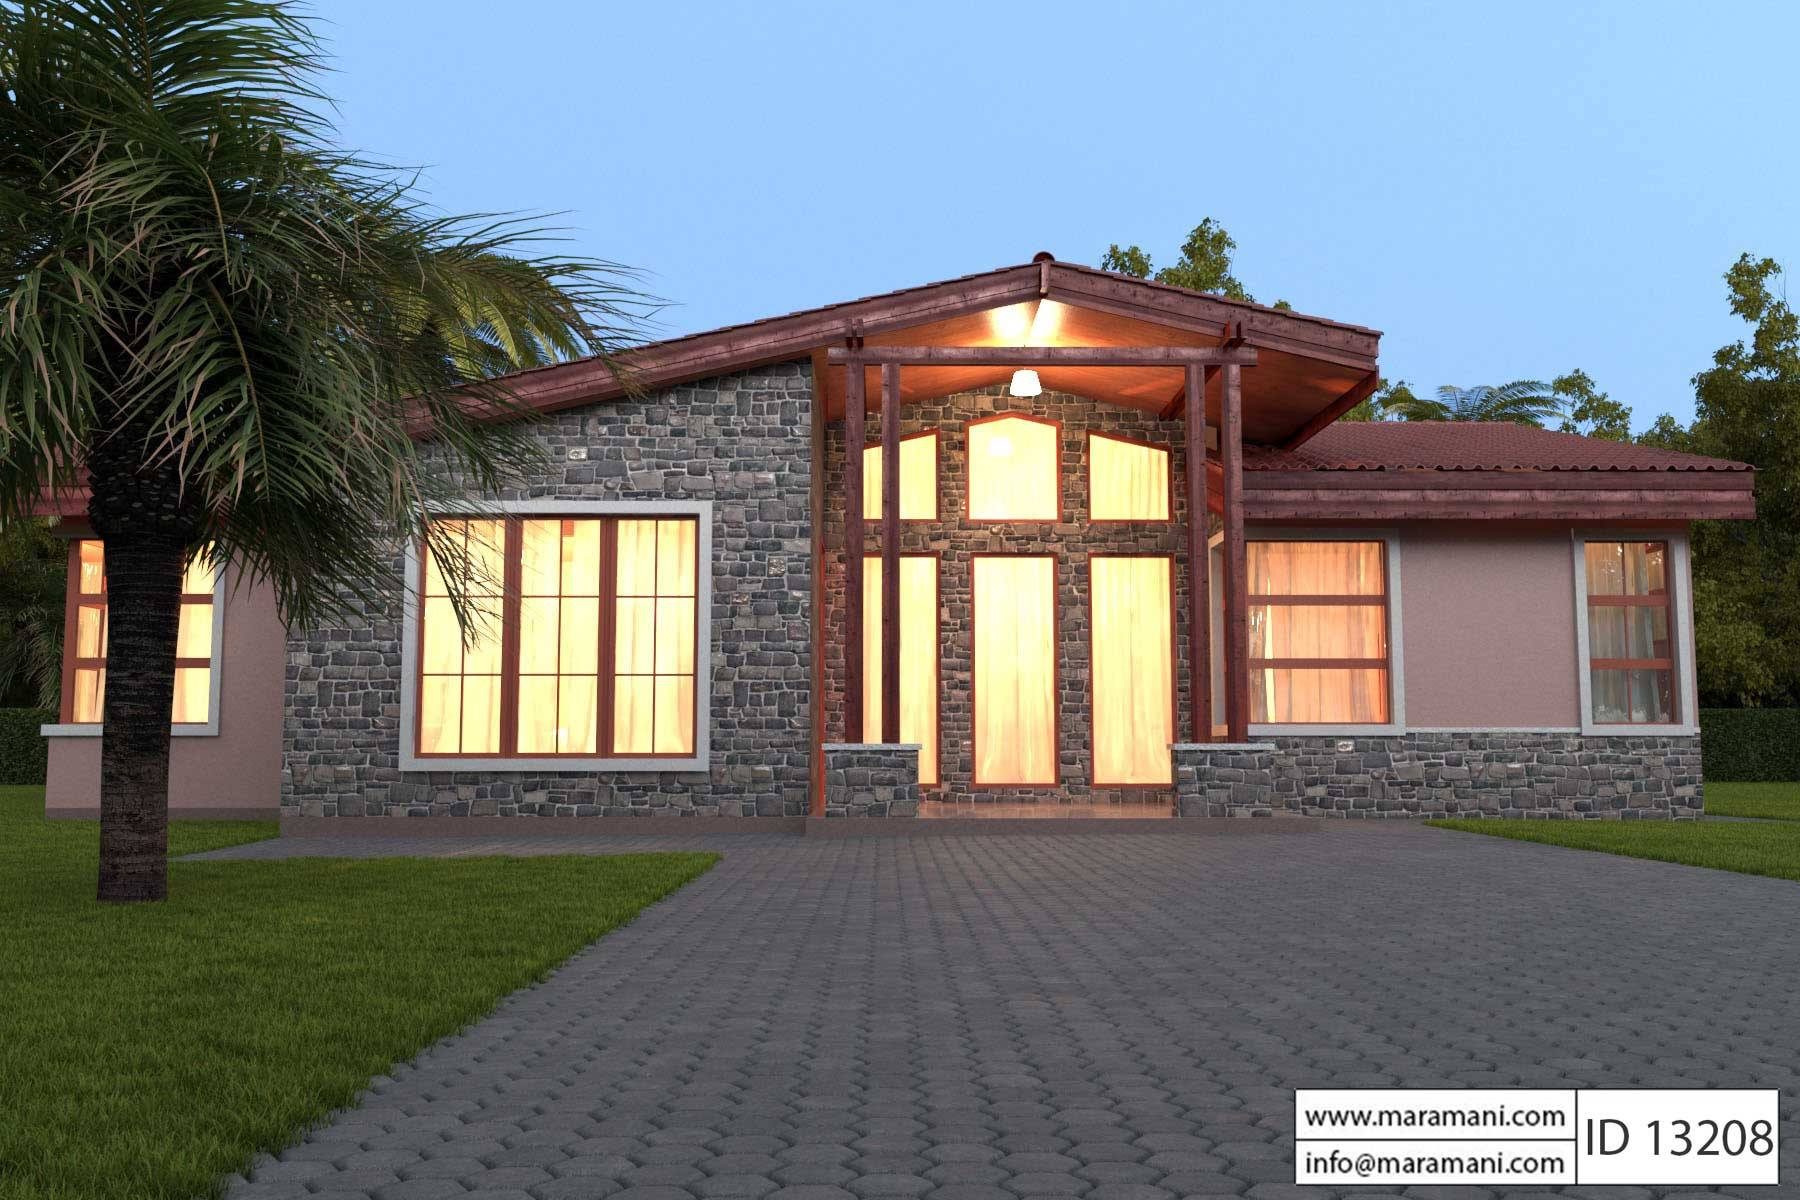 3 bedroom house plans. 3 Bedroom House Plan  ID 13208 Plans Designs for Africa by Maramani